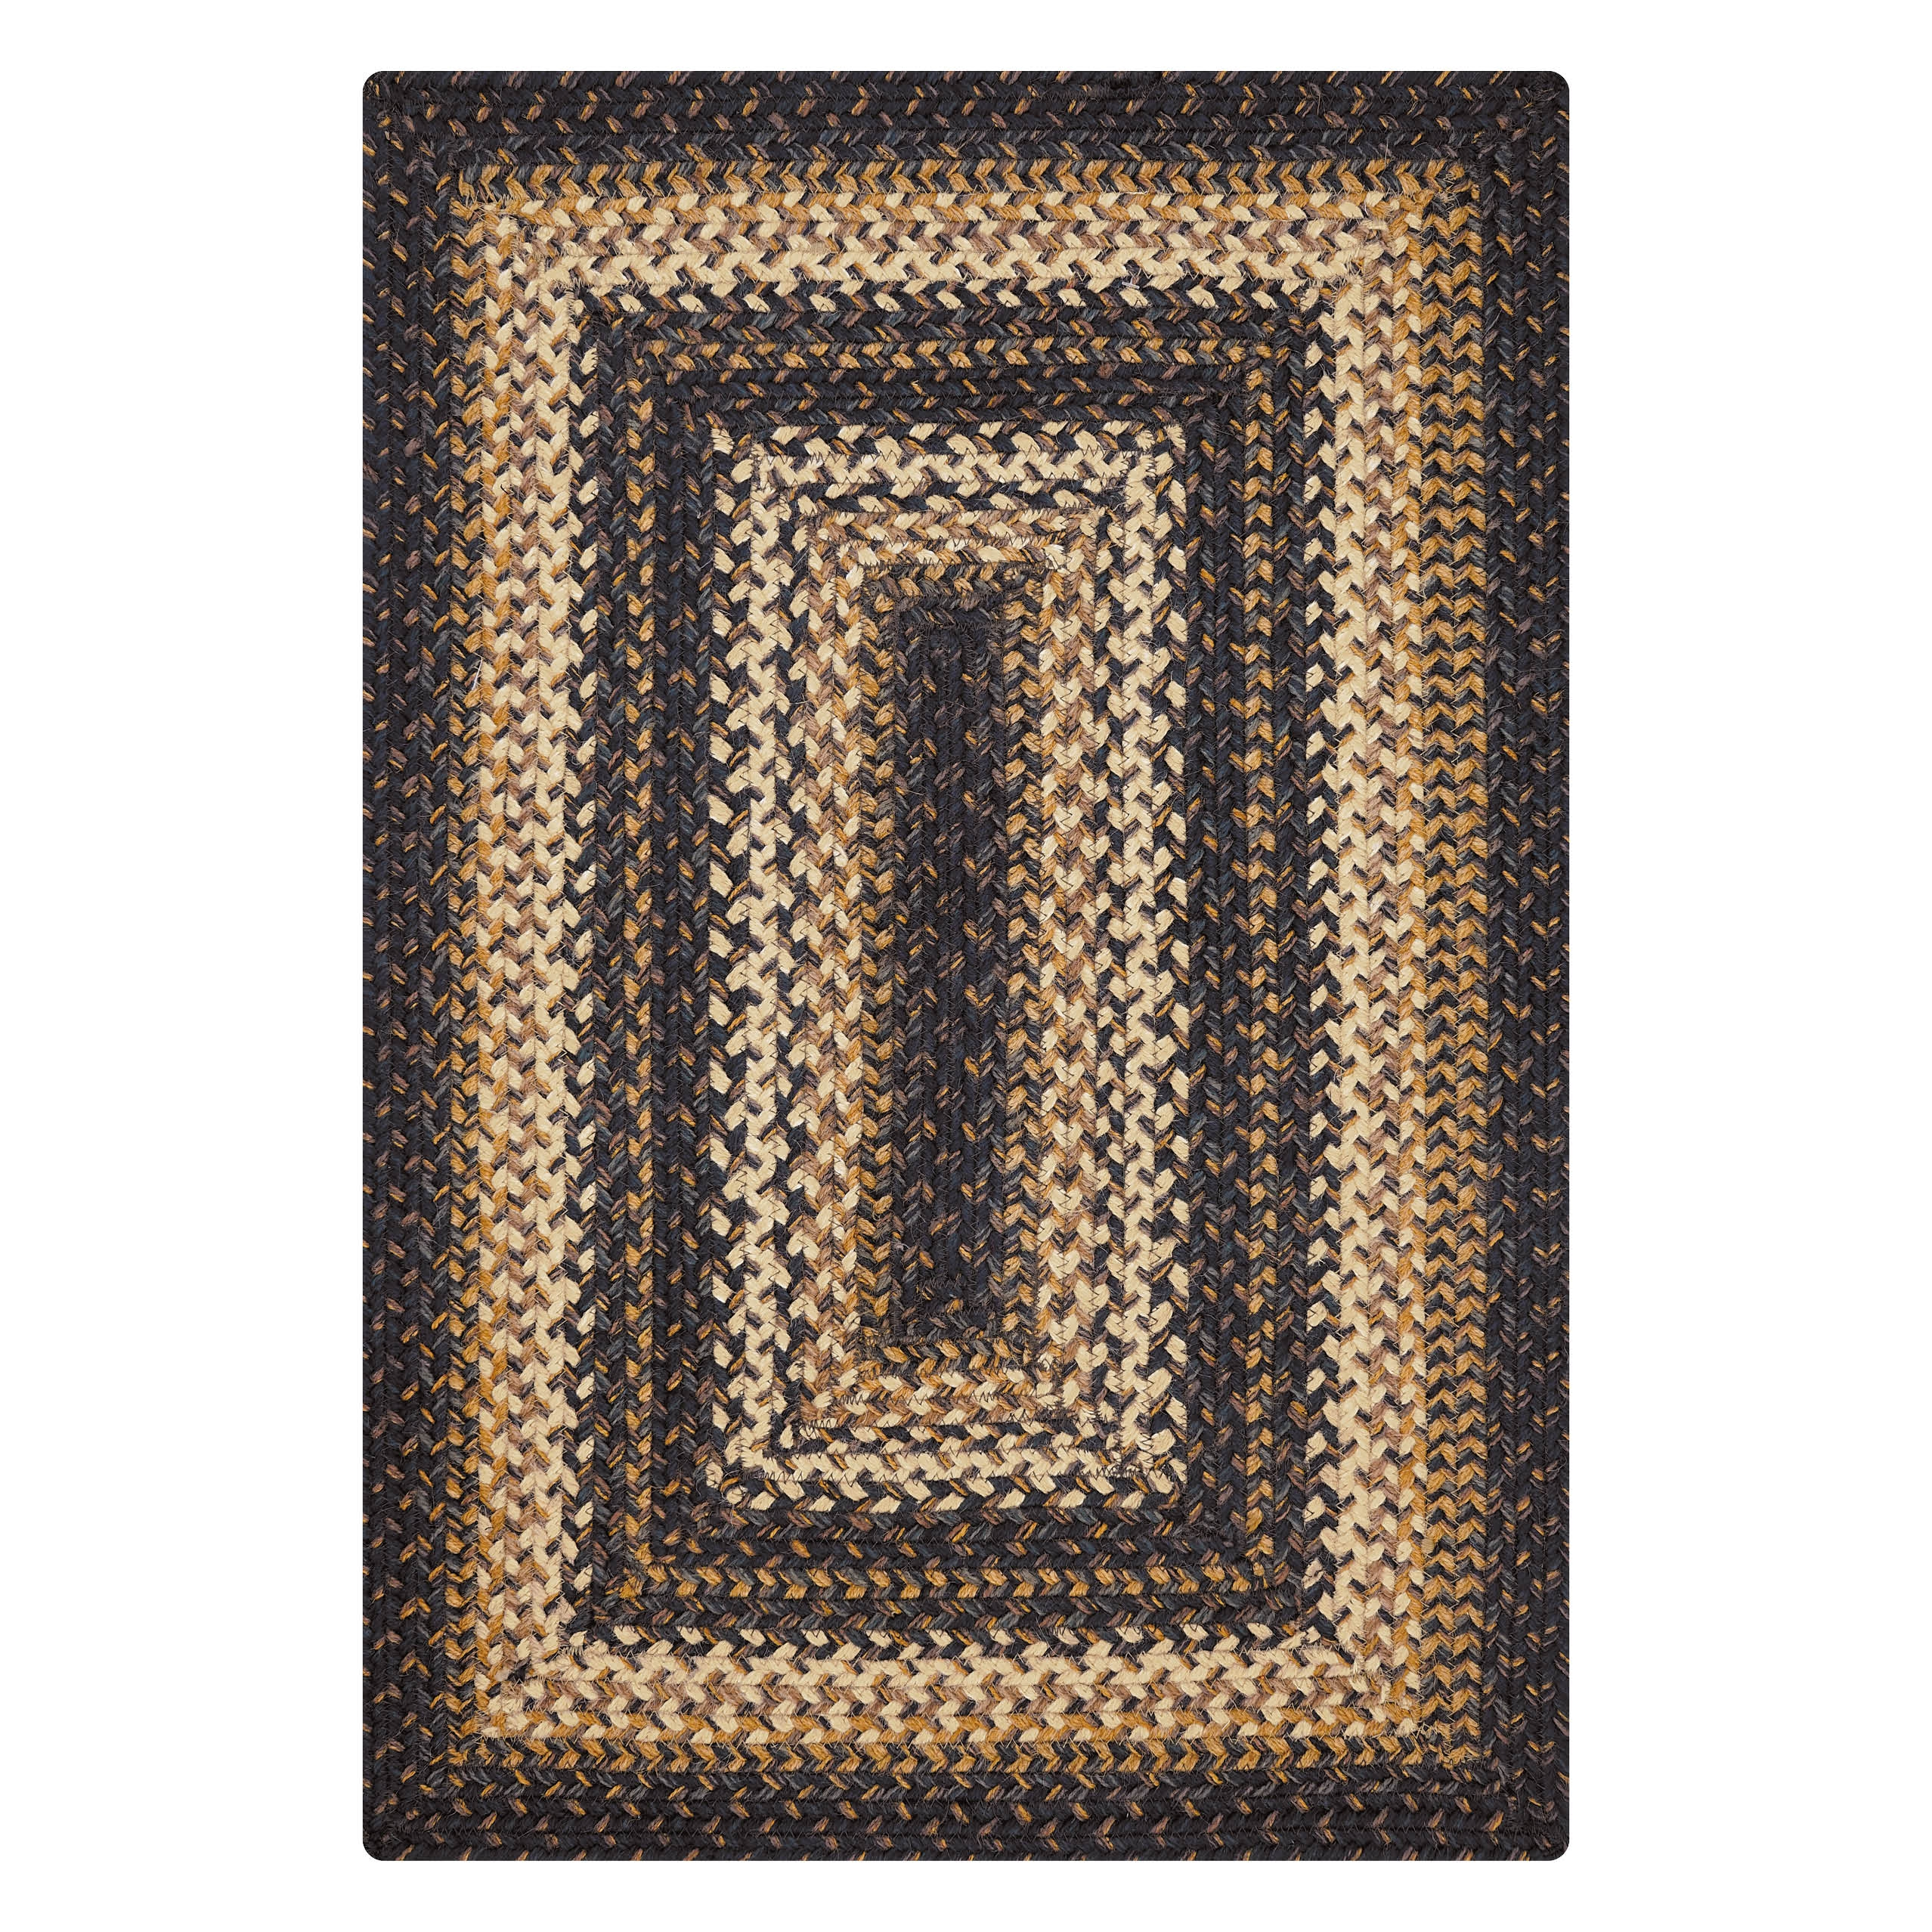 Kilimanjaro Black - Cream Jute Braided Rectangular Rugs